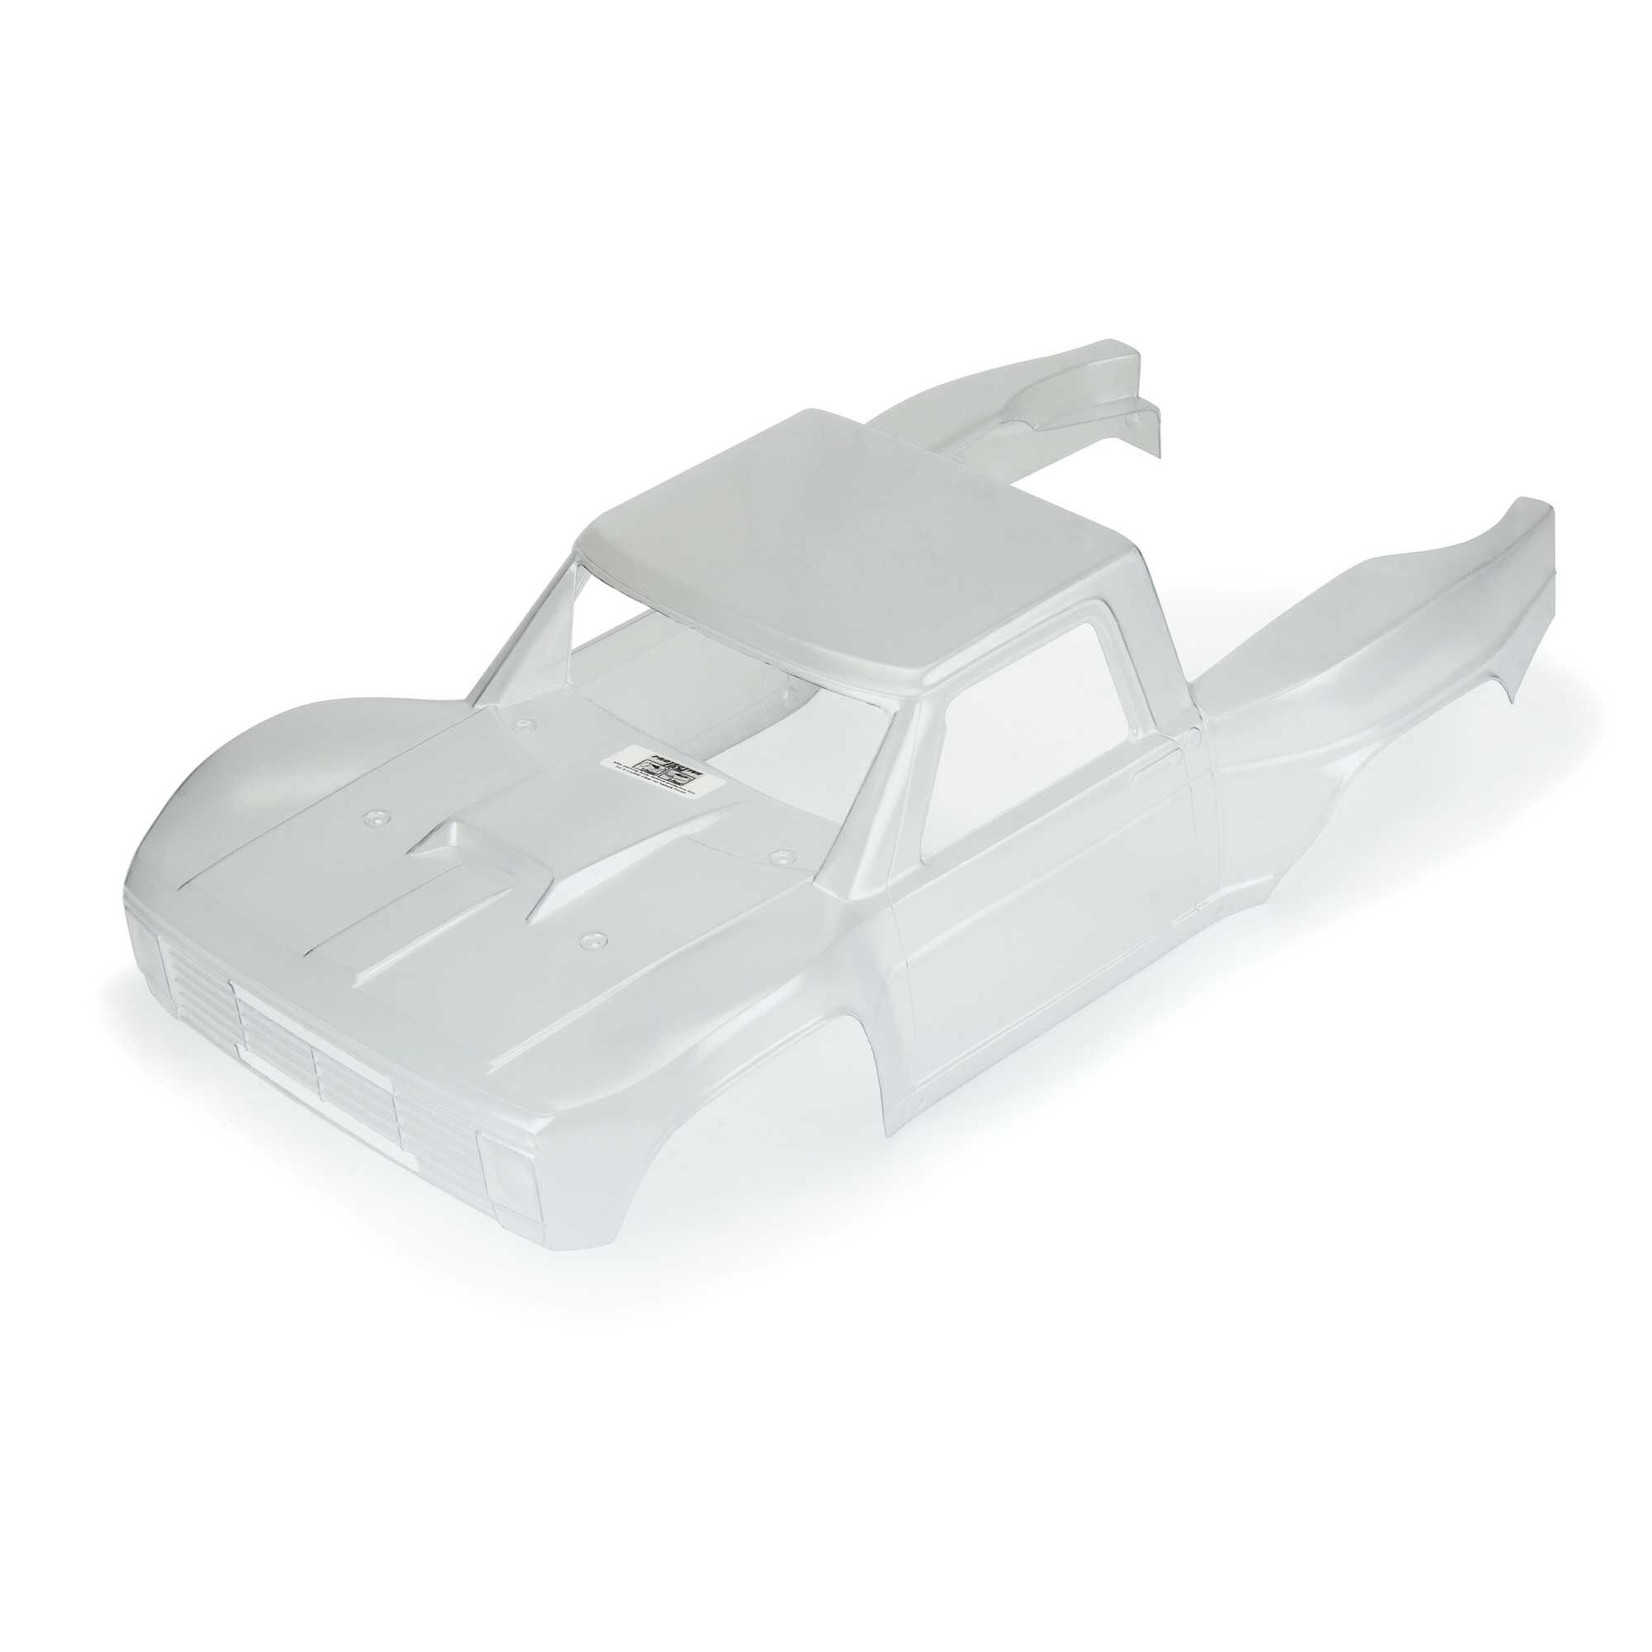 Pro-Line Racing PRO3547-17 Pro-Line Pre-Cut 1967 Ford F-100 Clear Body for UDR